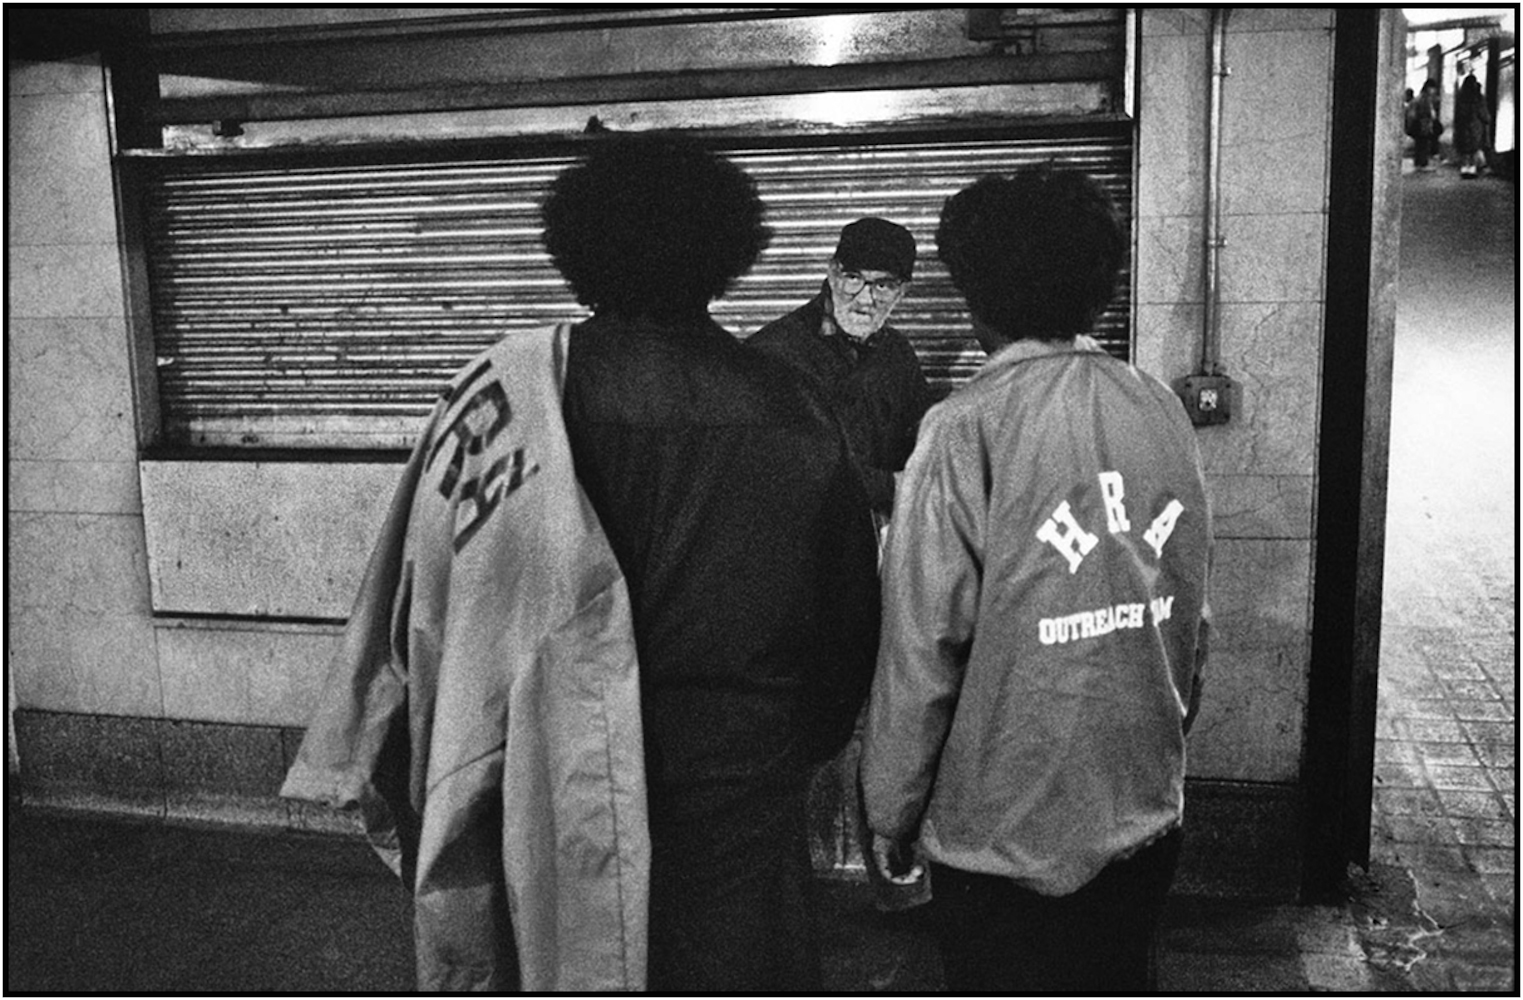 Human Resources Administration workers reach out to homeless man at Grand Central Terminal, Manhattan.1989.